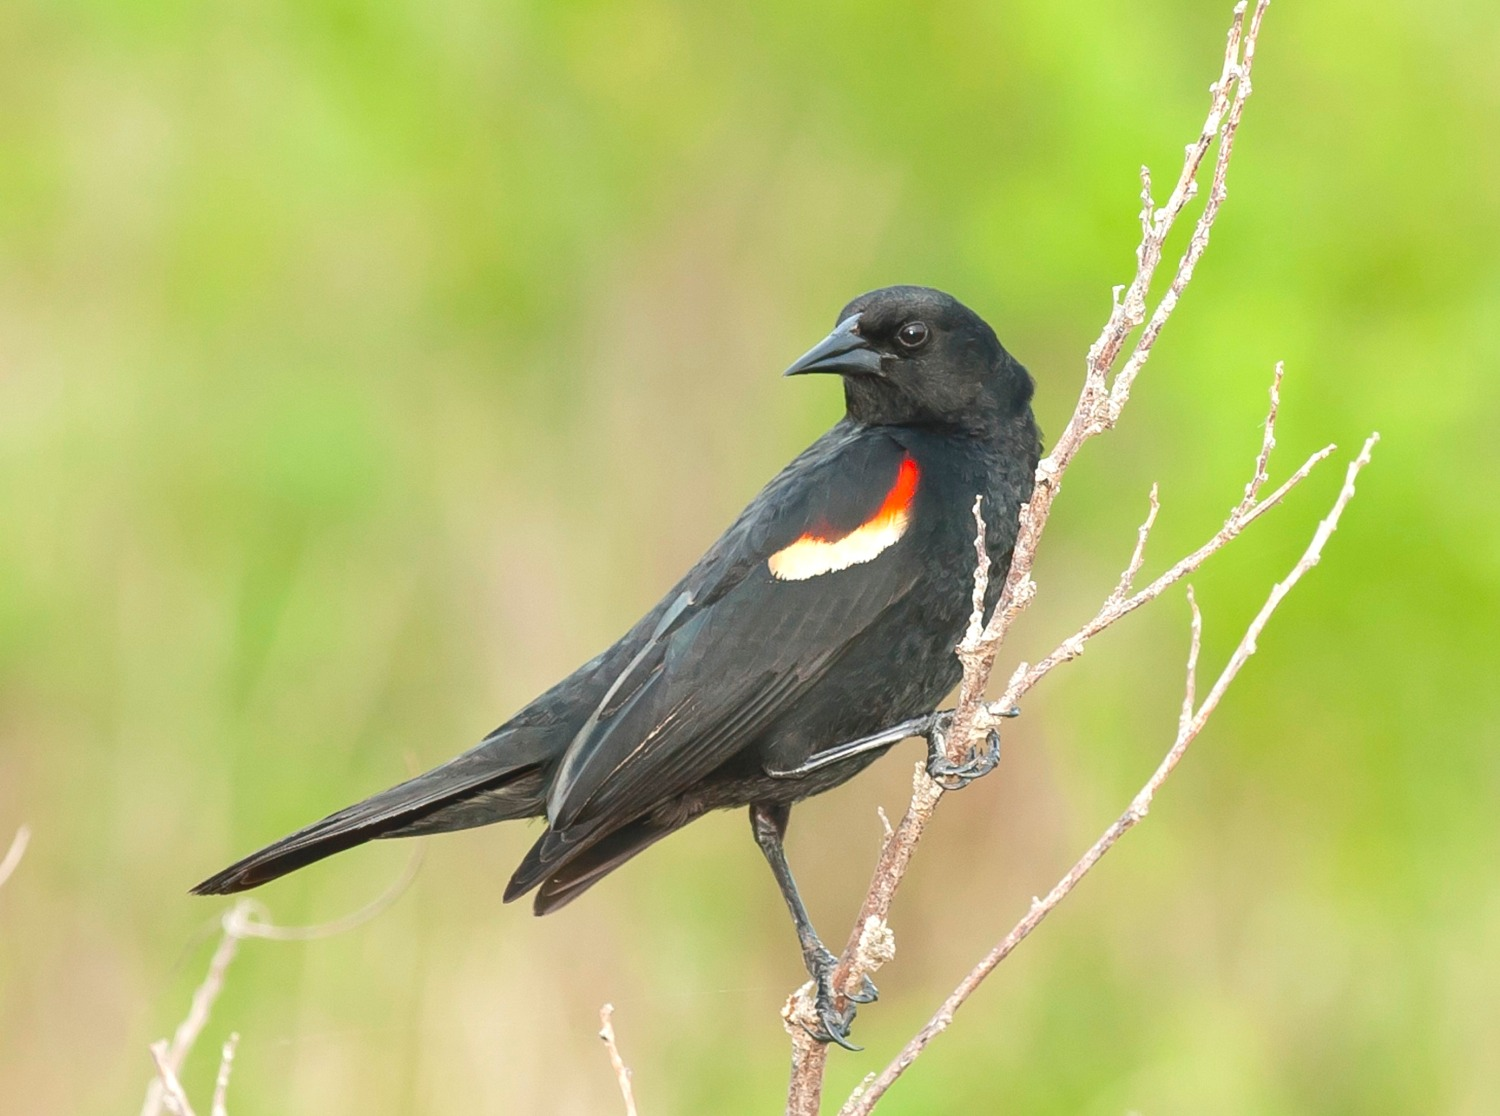 red-winged-blackbird-male-abaco-bahamas-tom-sheley.jpg